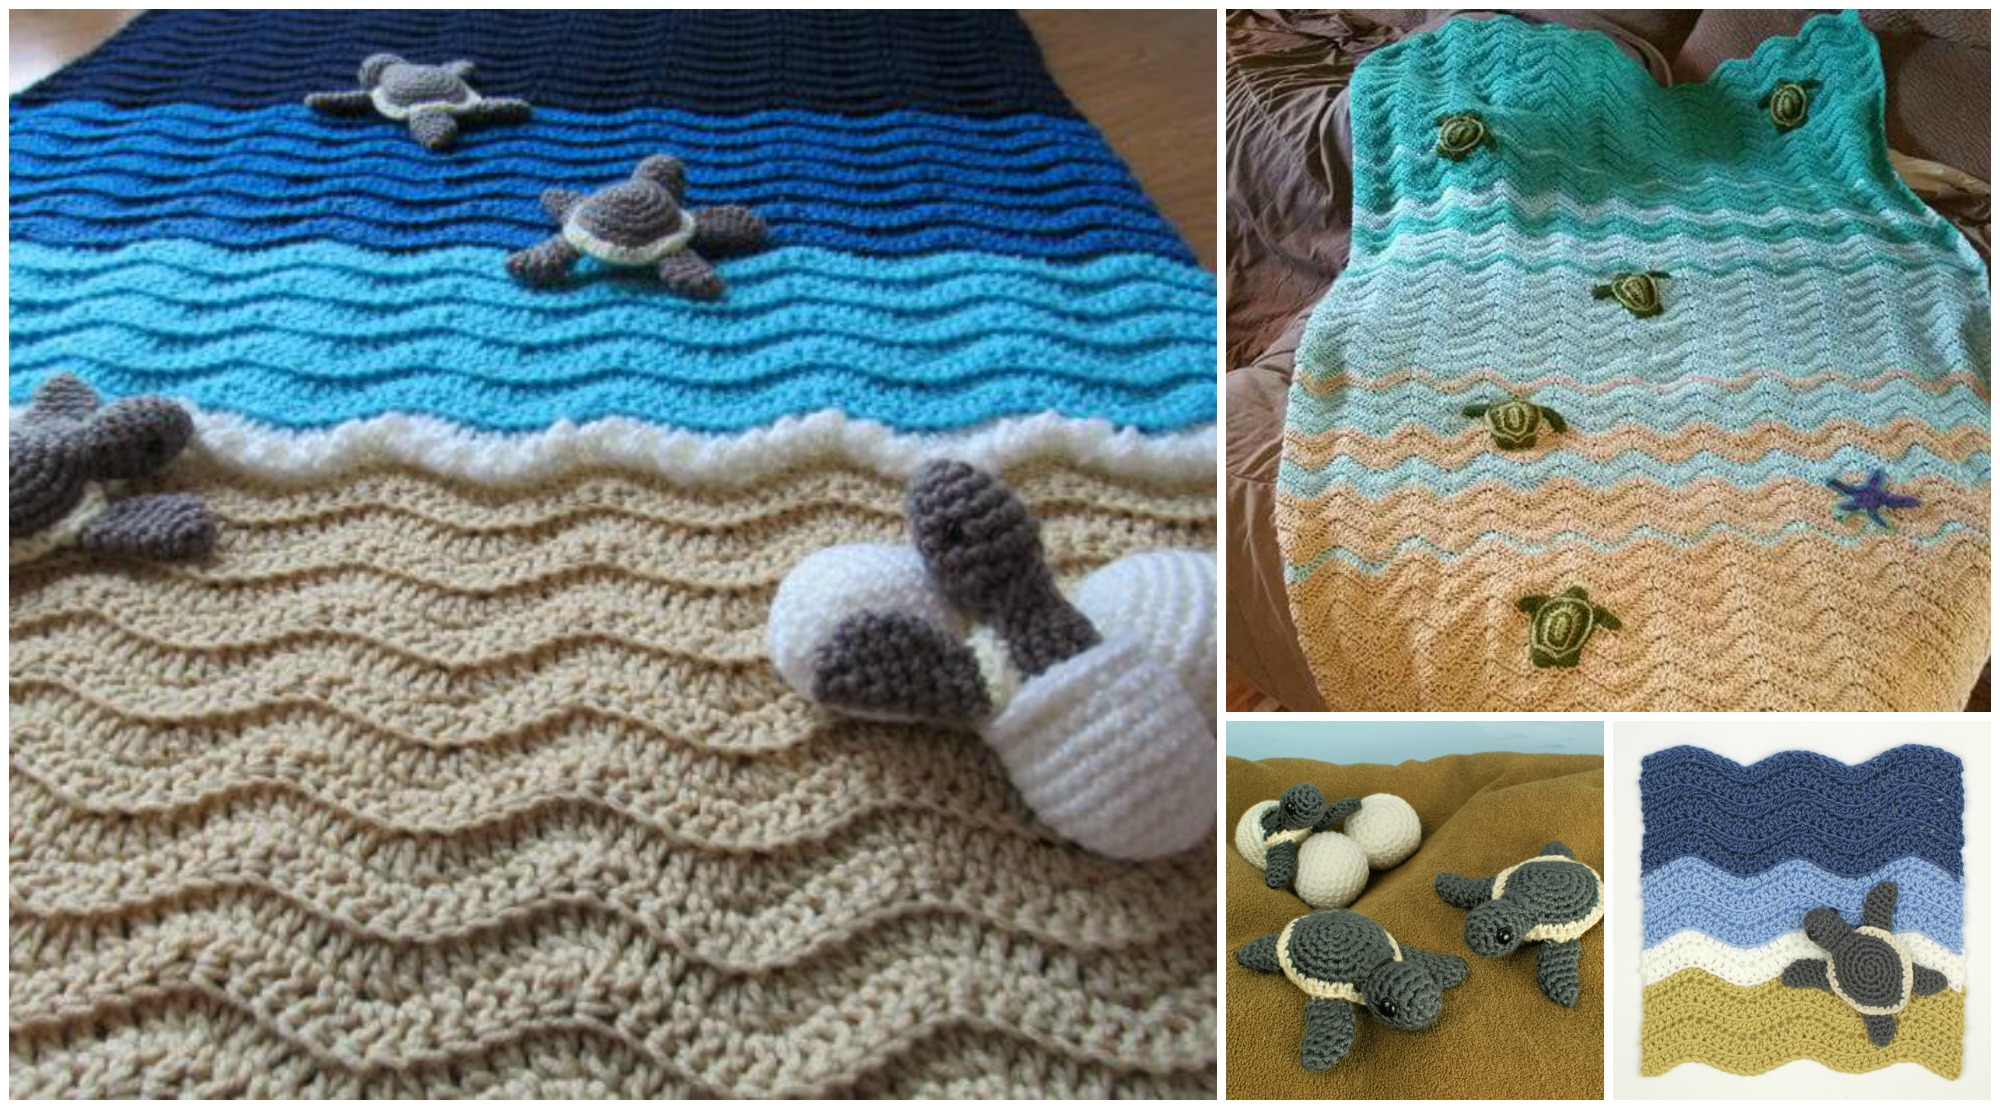 Crochet Turtle Beach Blanket